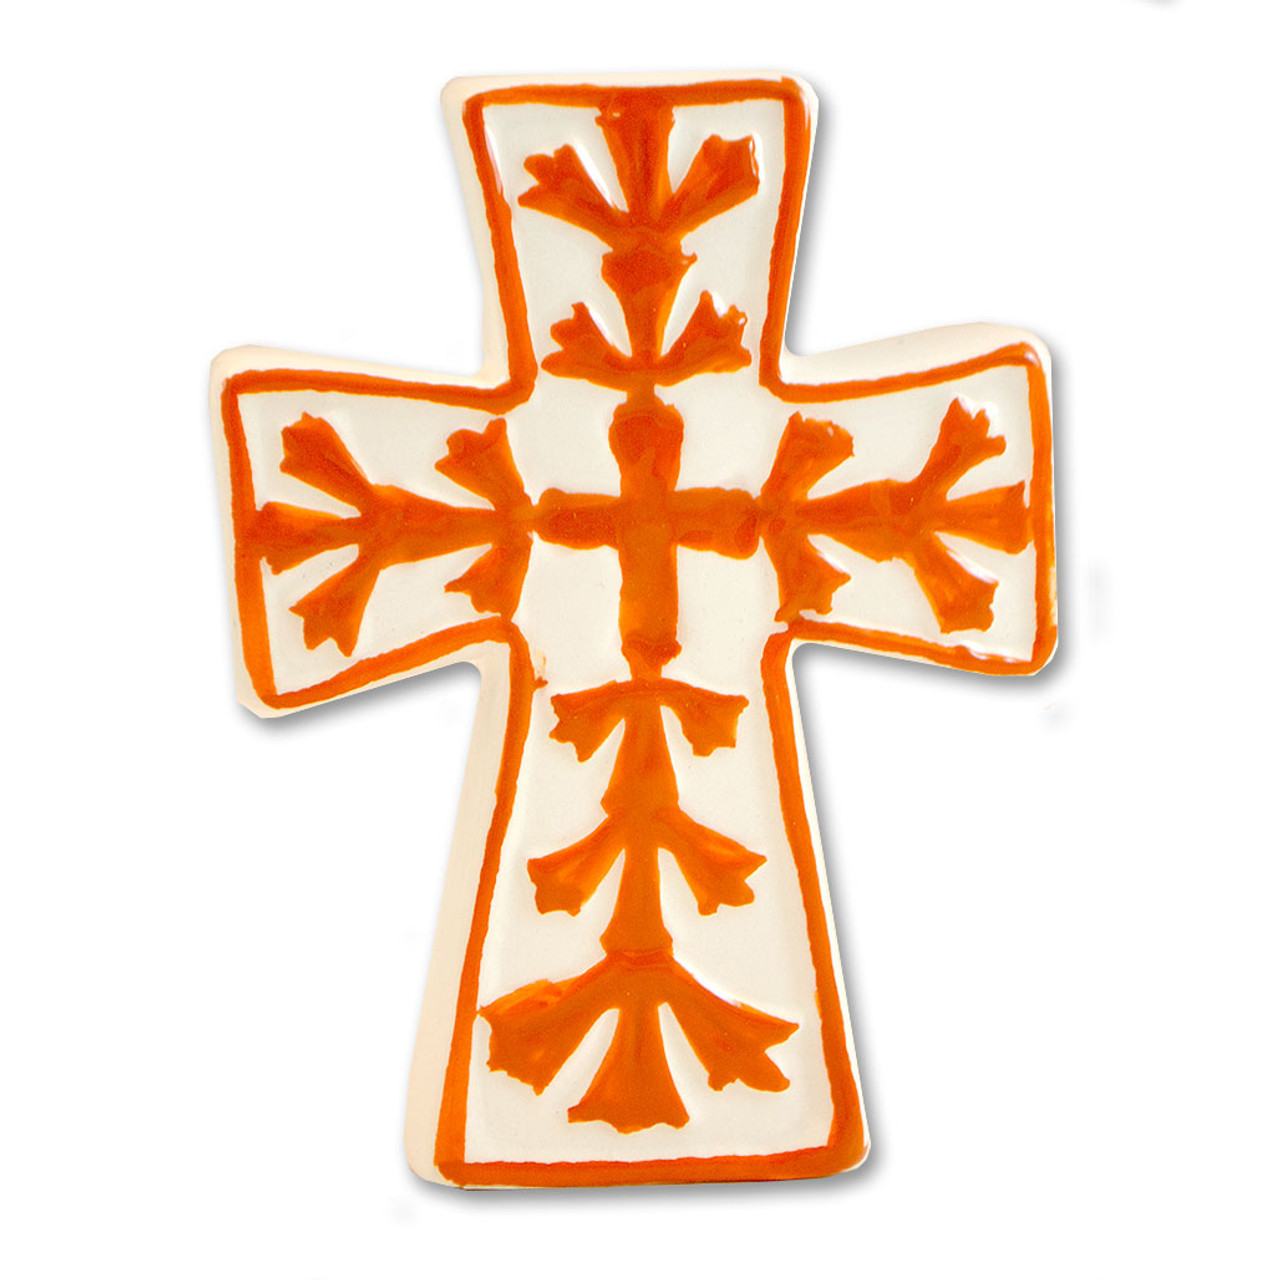 Tabletop Ceramic Crosses - 3 styles sold separately